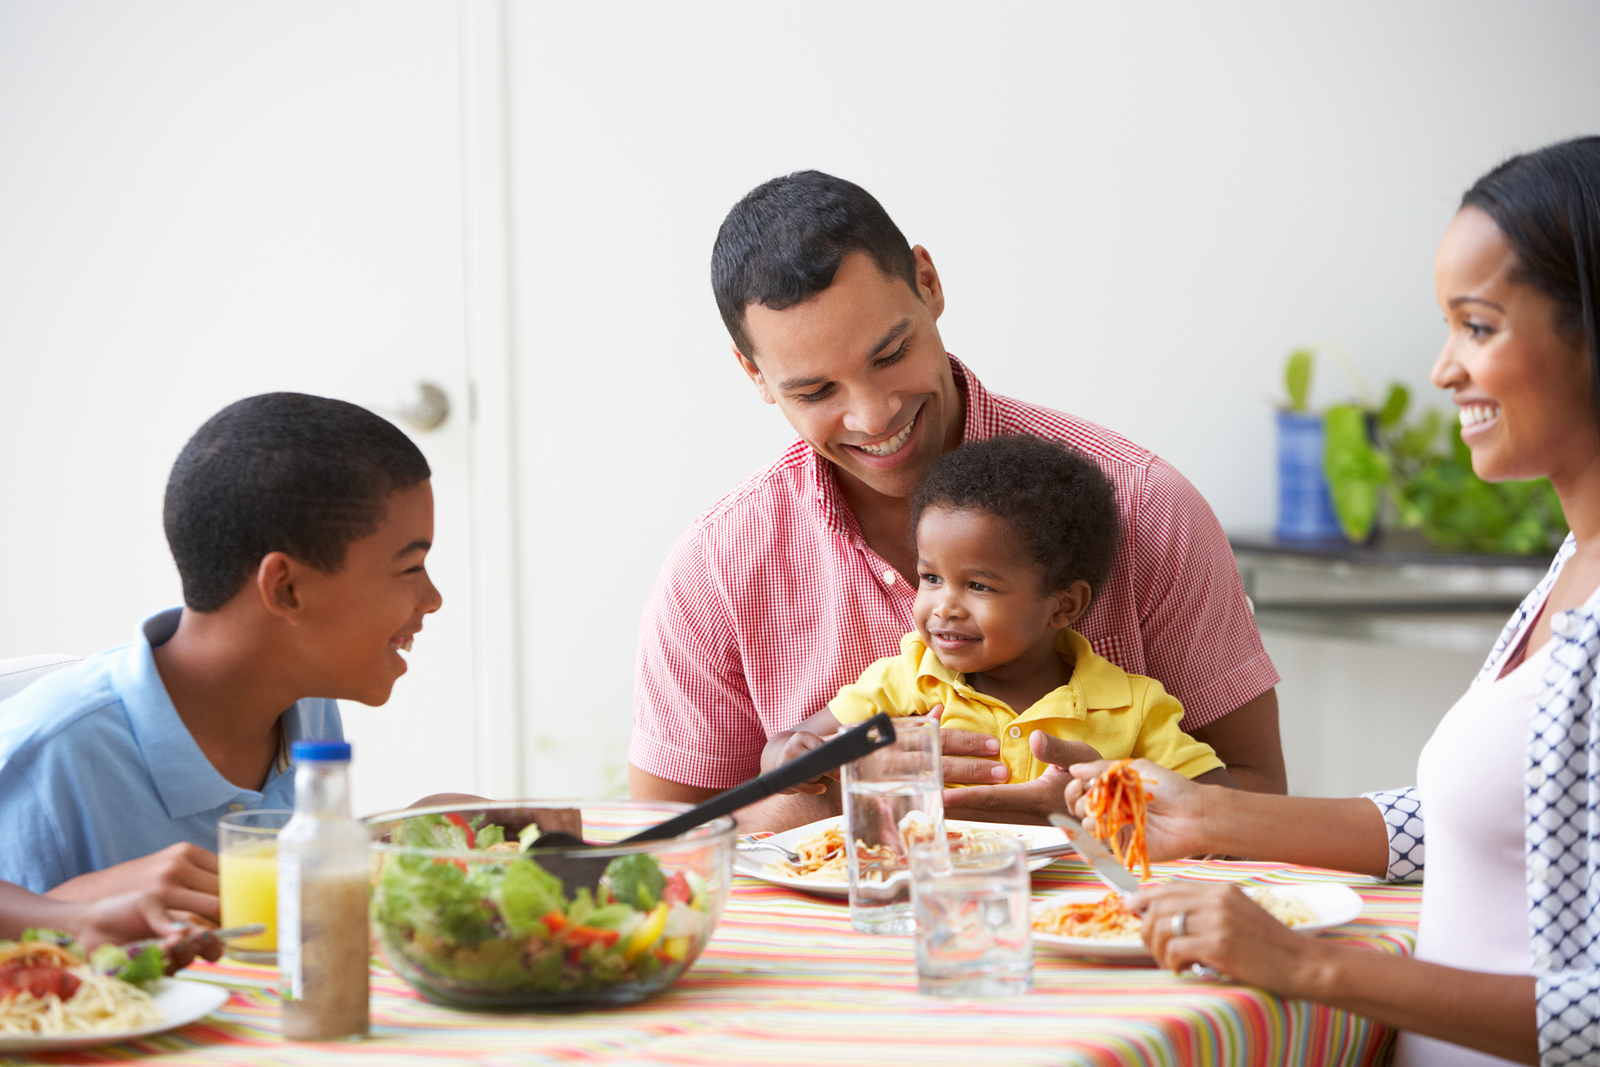 3 Questions to Determine If You Have A Healthy Parenting Mindset